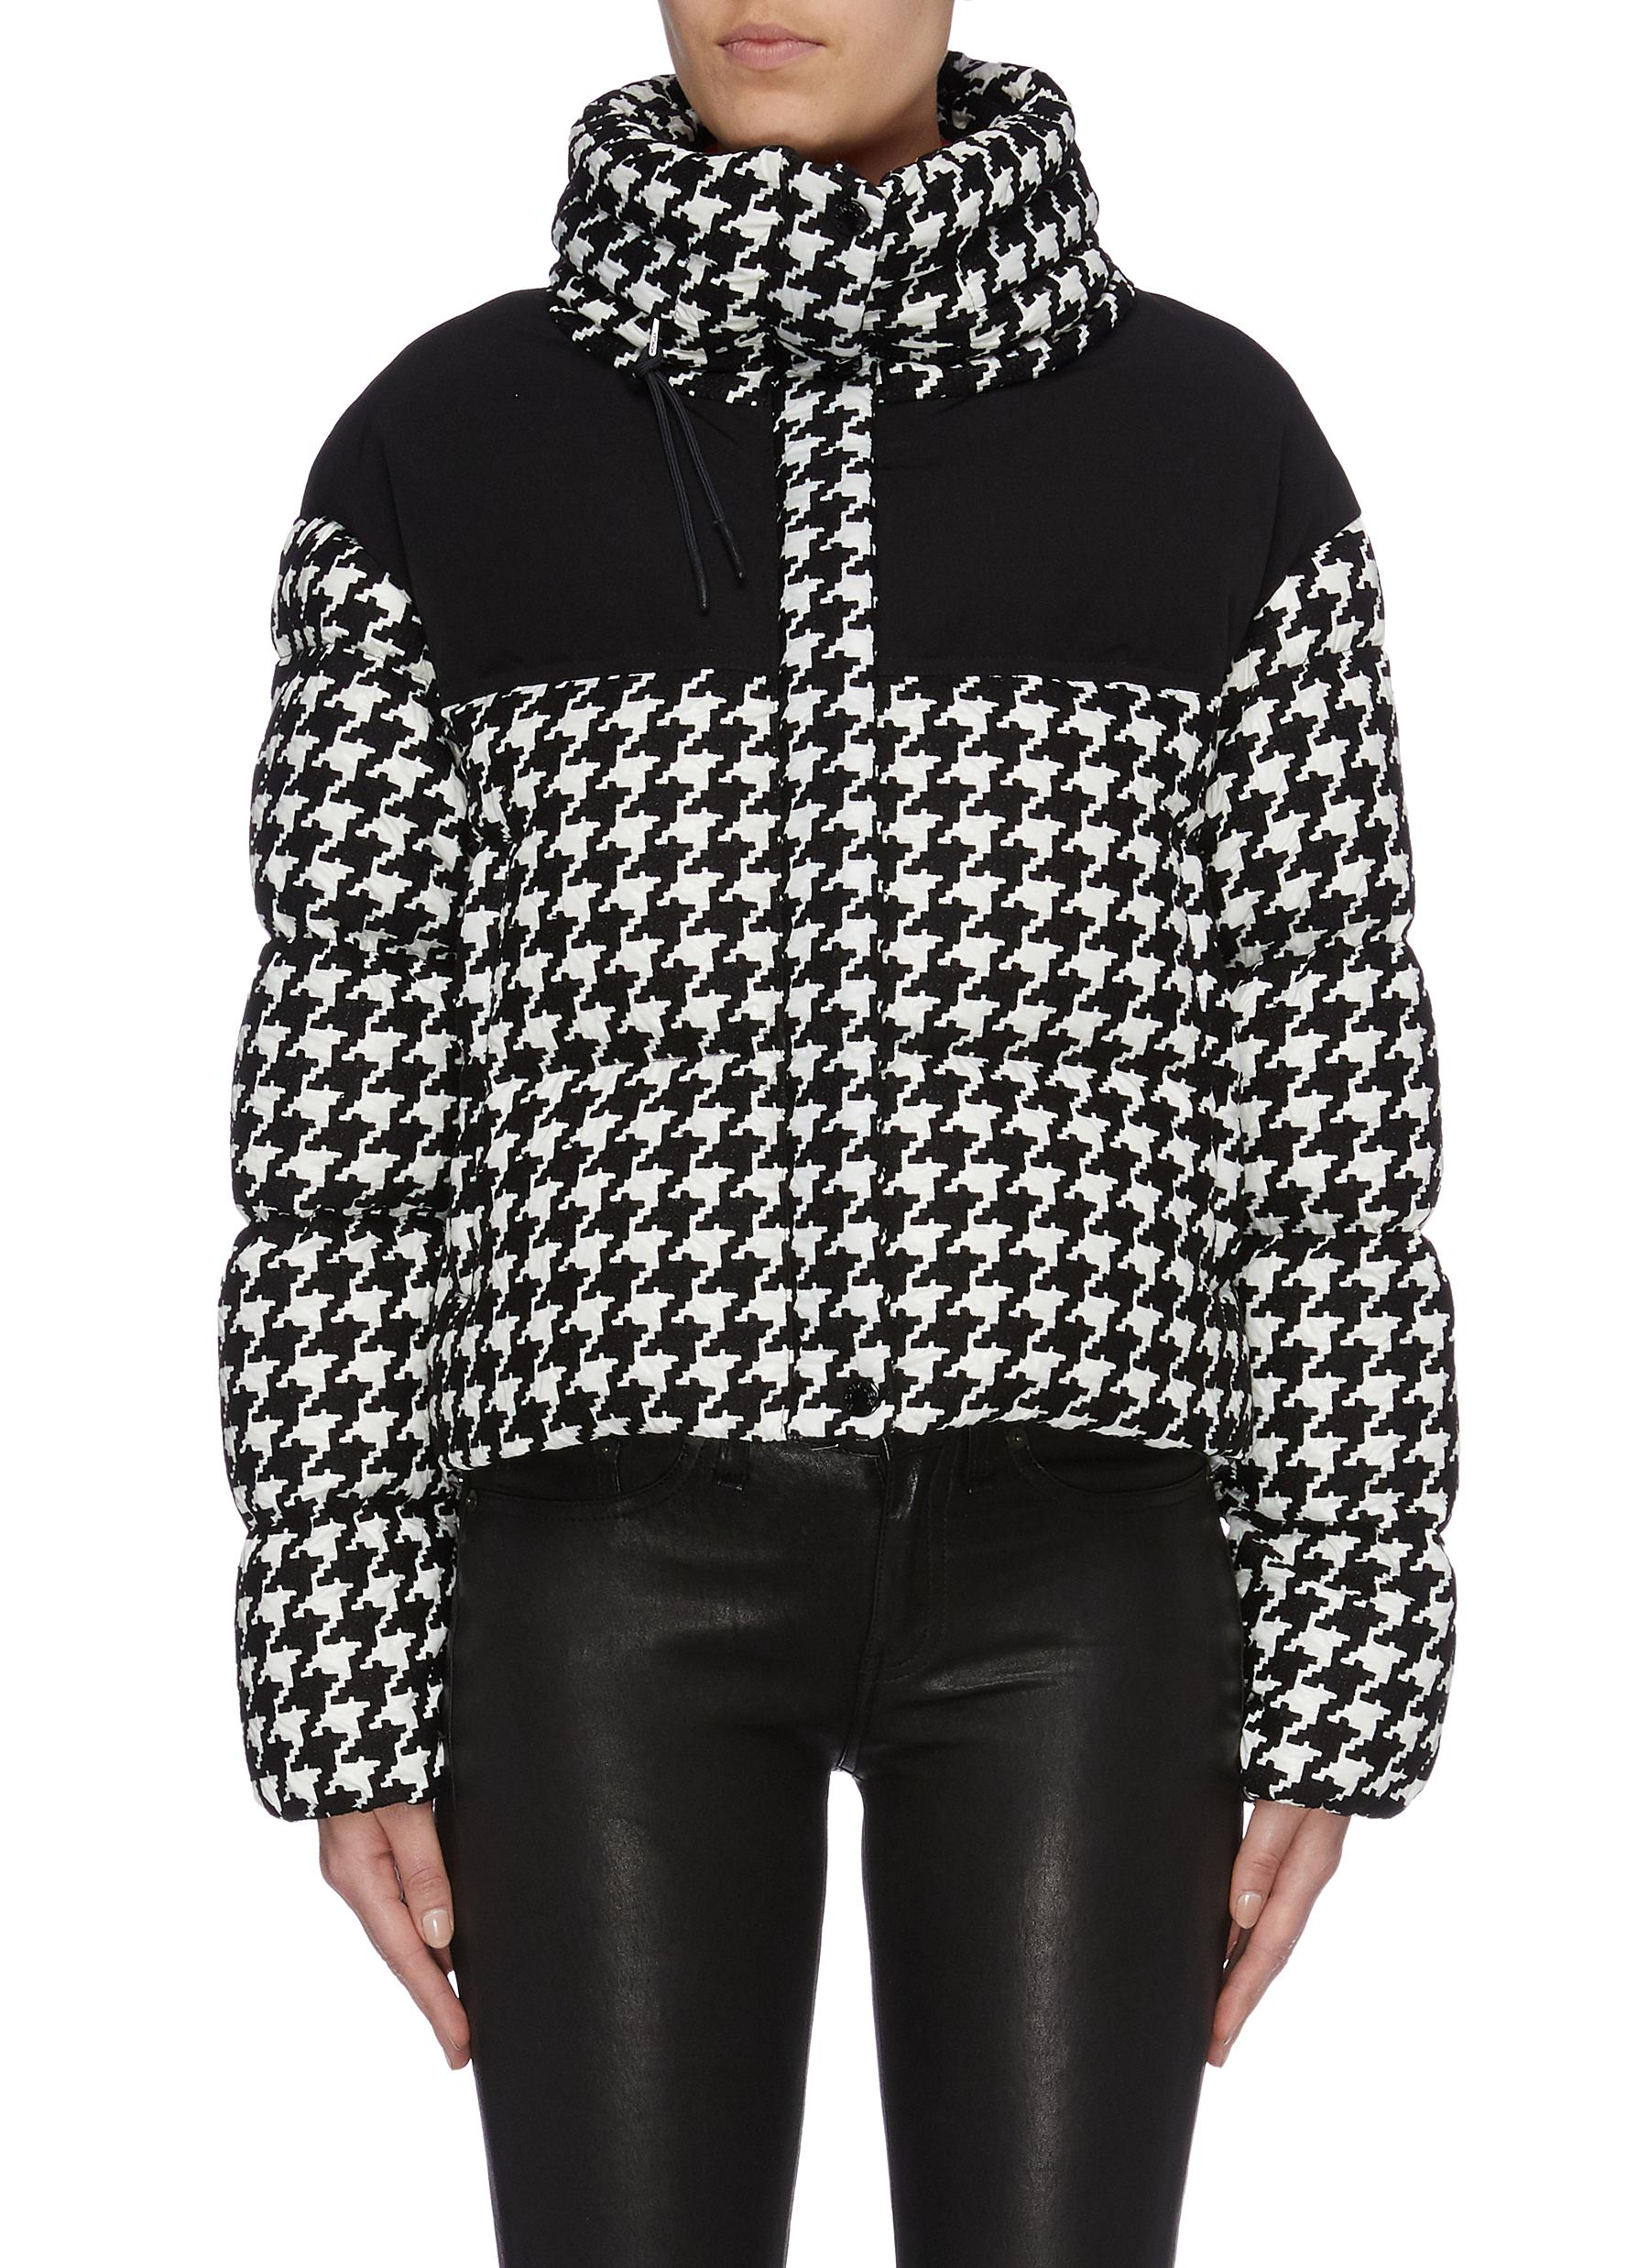 Nil contrast yoke houndstooth jacquard down puffer jacket by Moncler